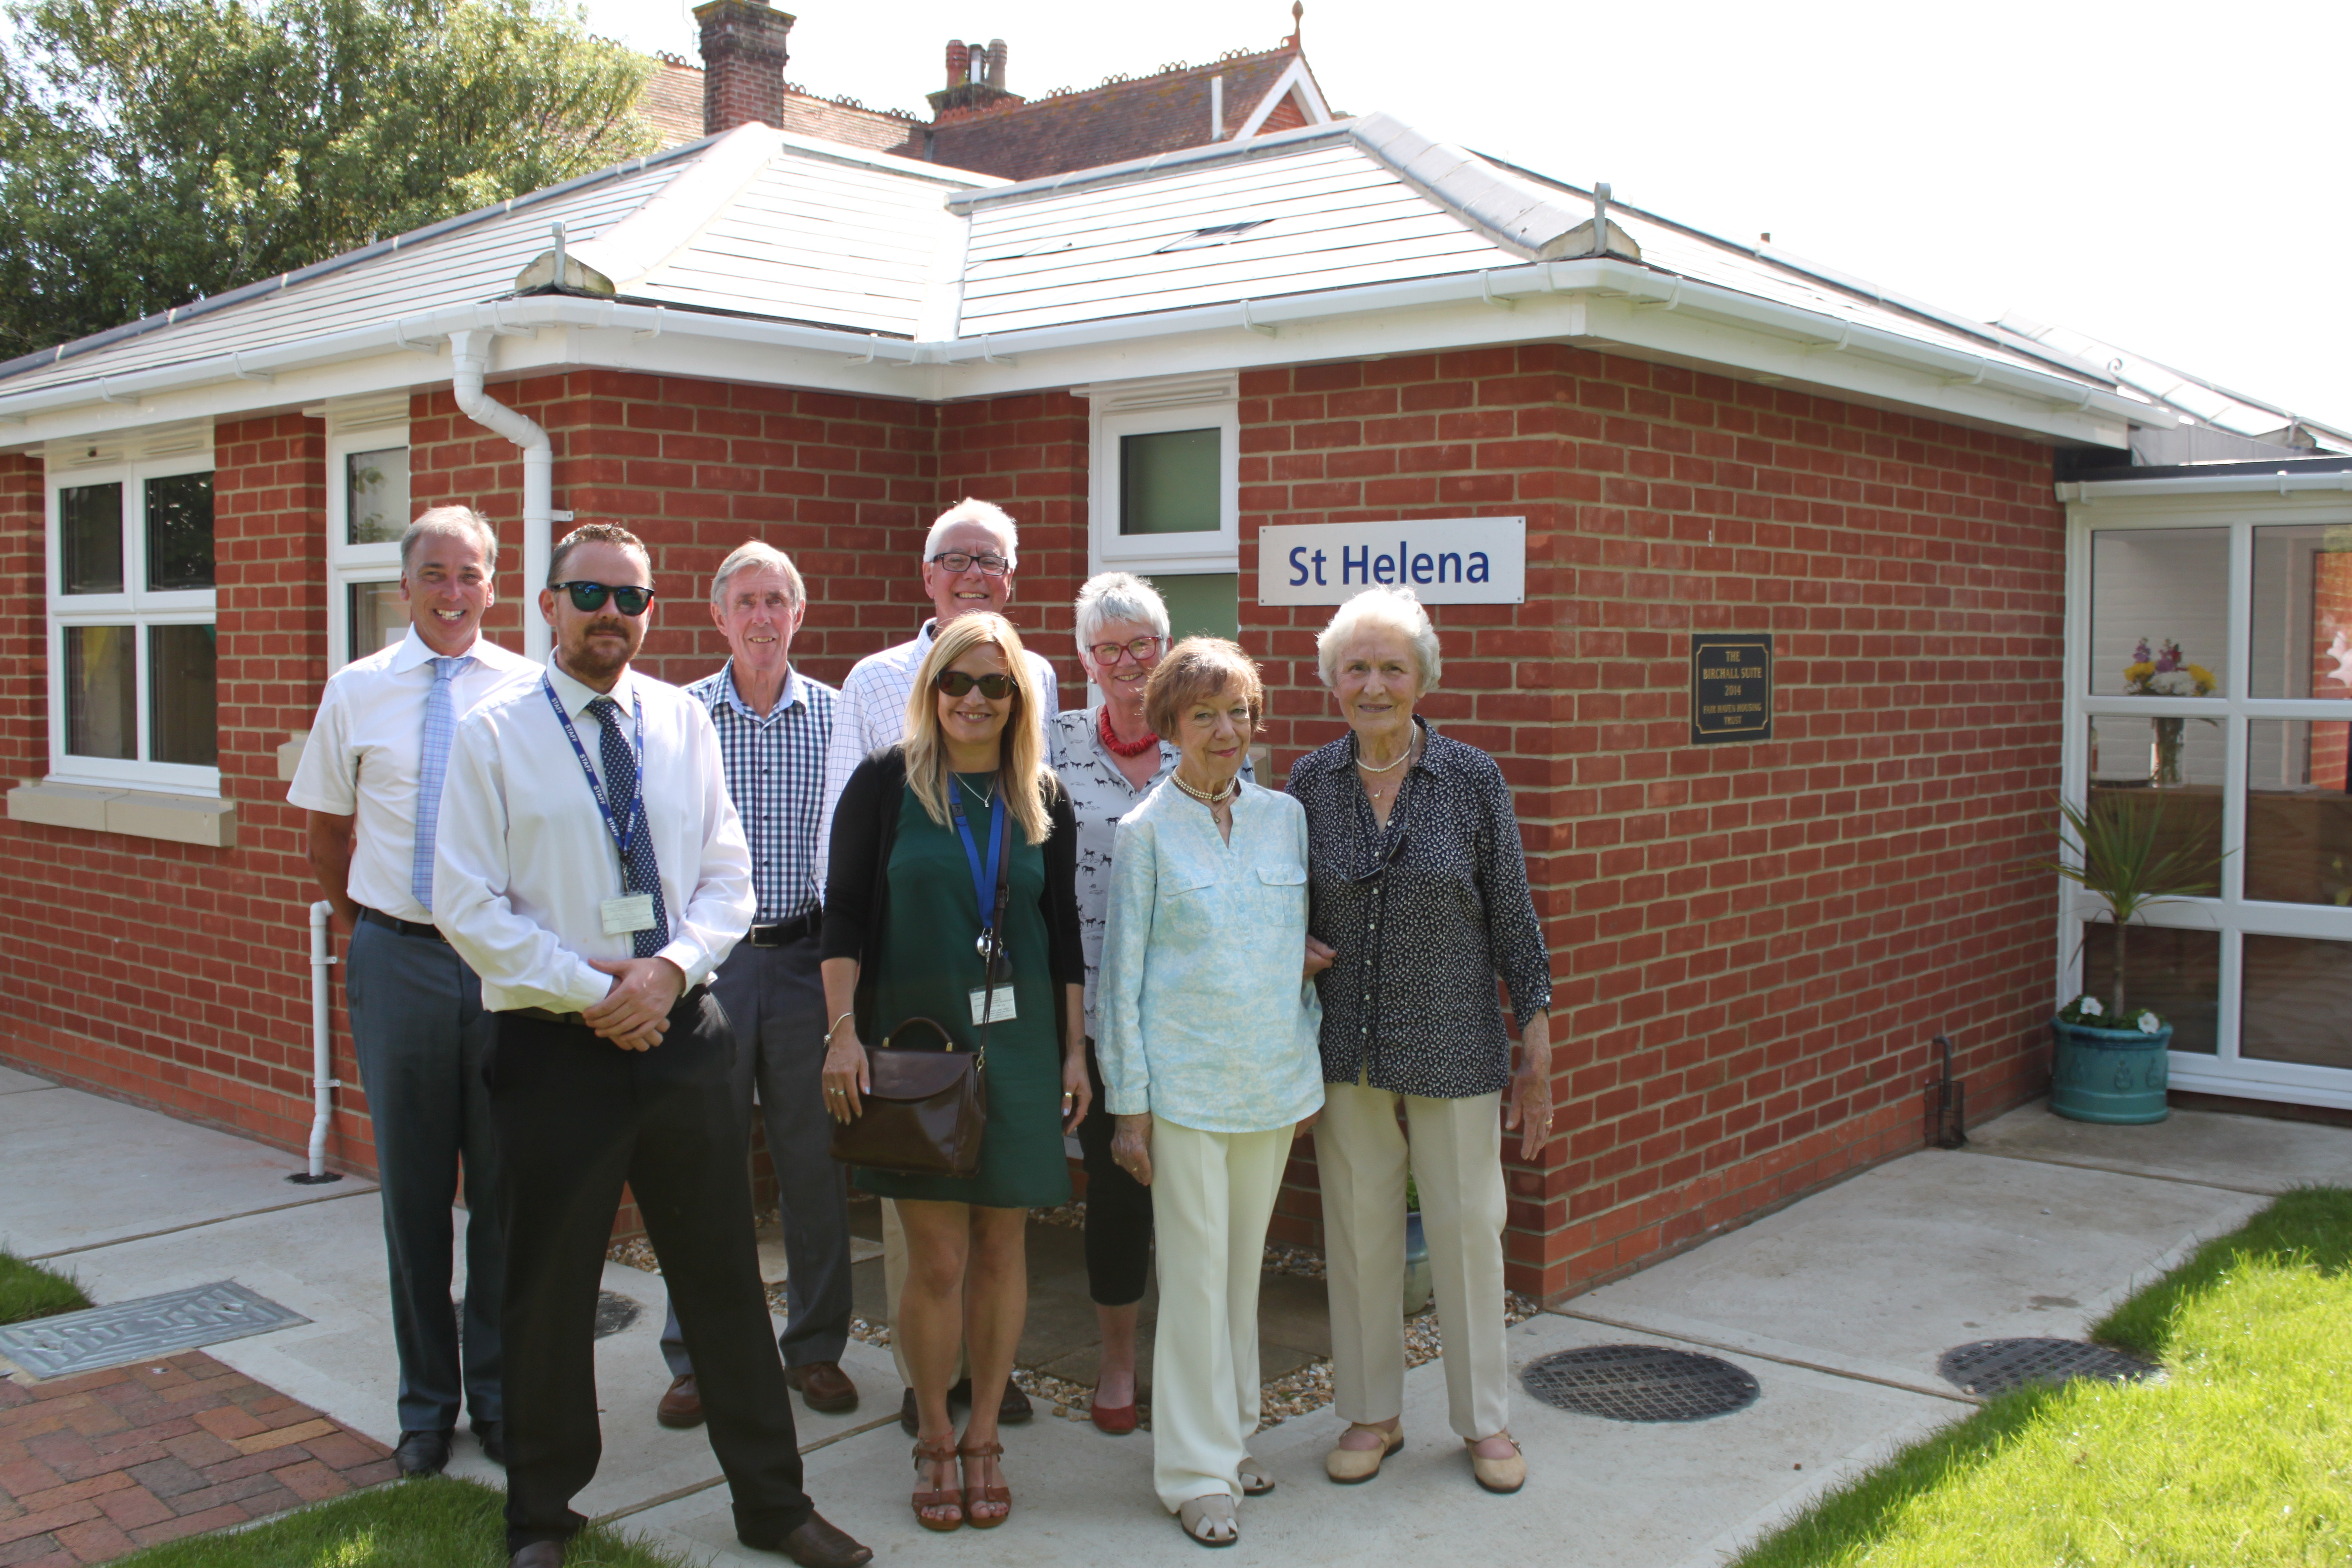 New independent living unit for autistic adults opens